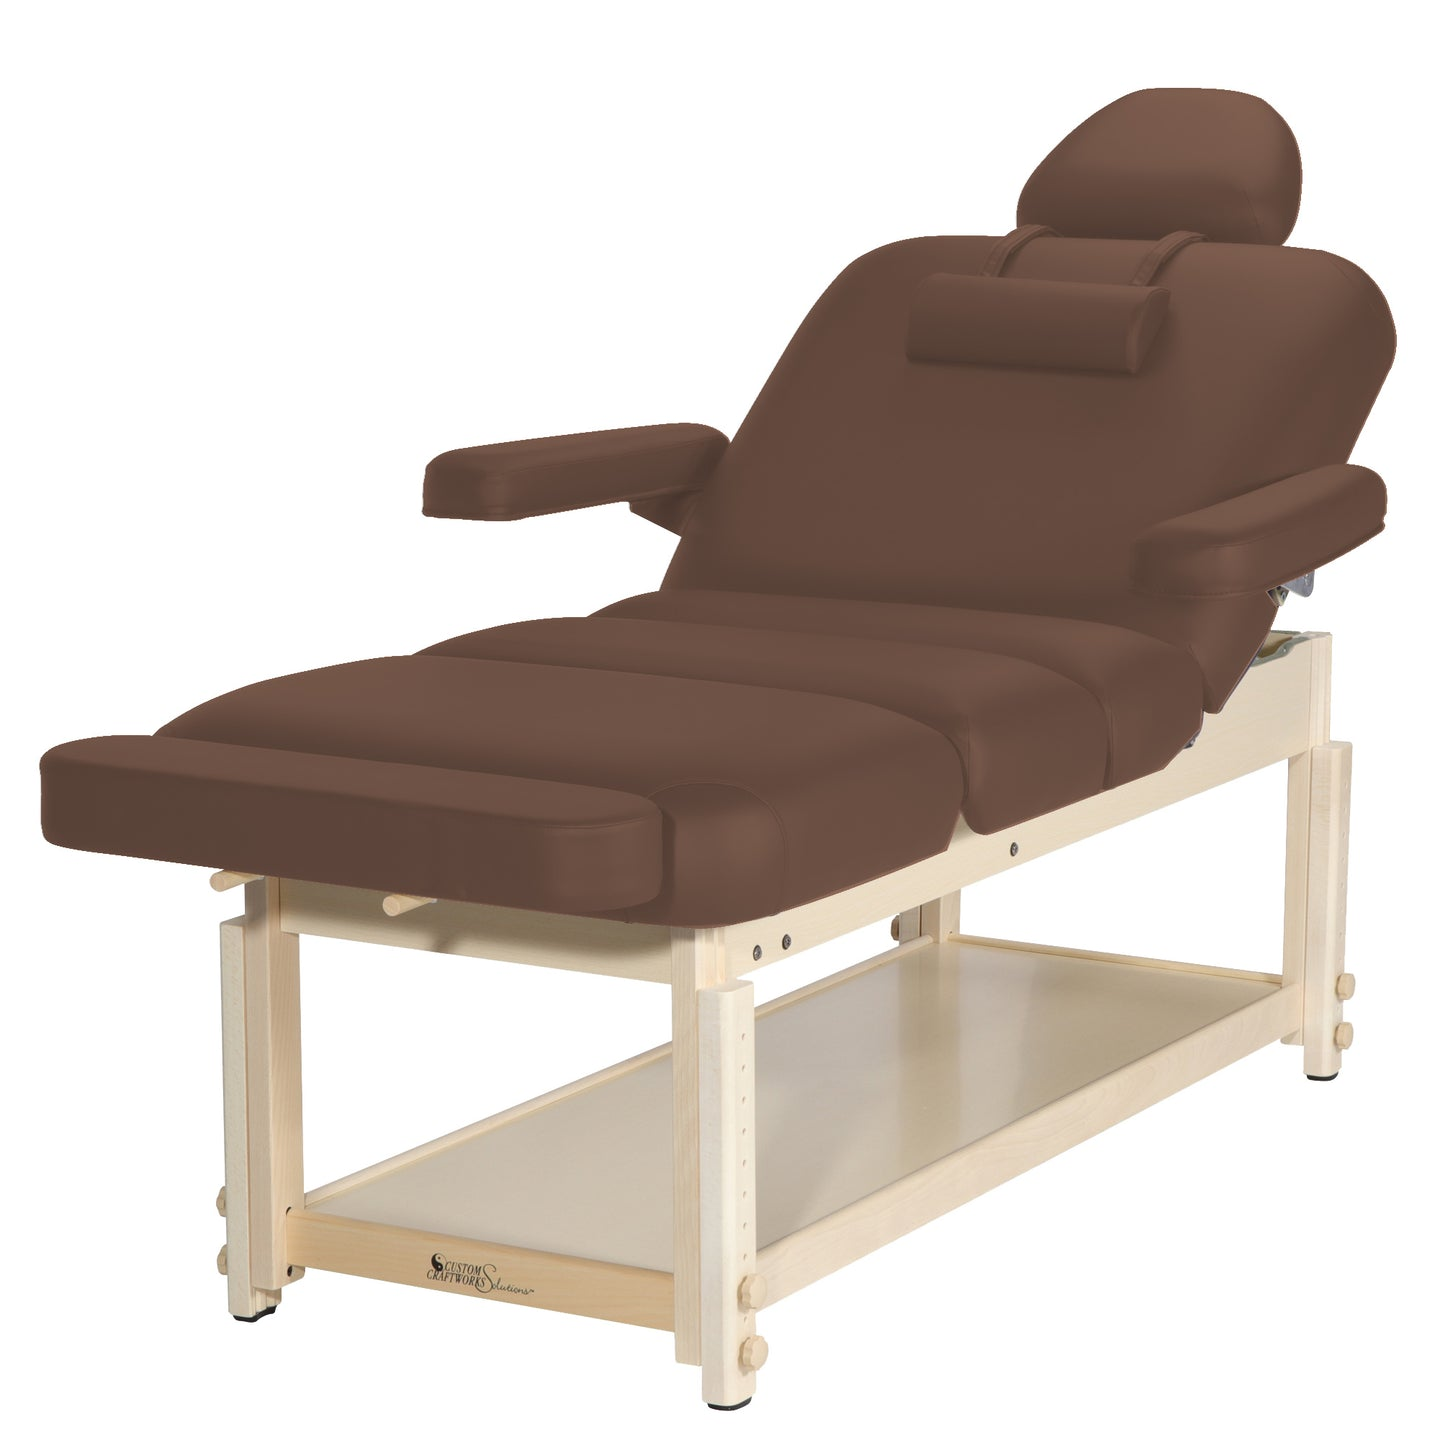 Custom Craftworks - Aura Deluxe Stationary Massage Table